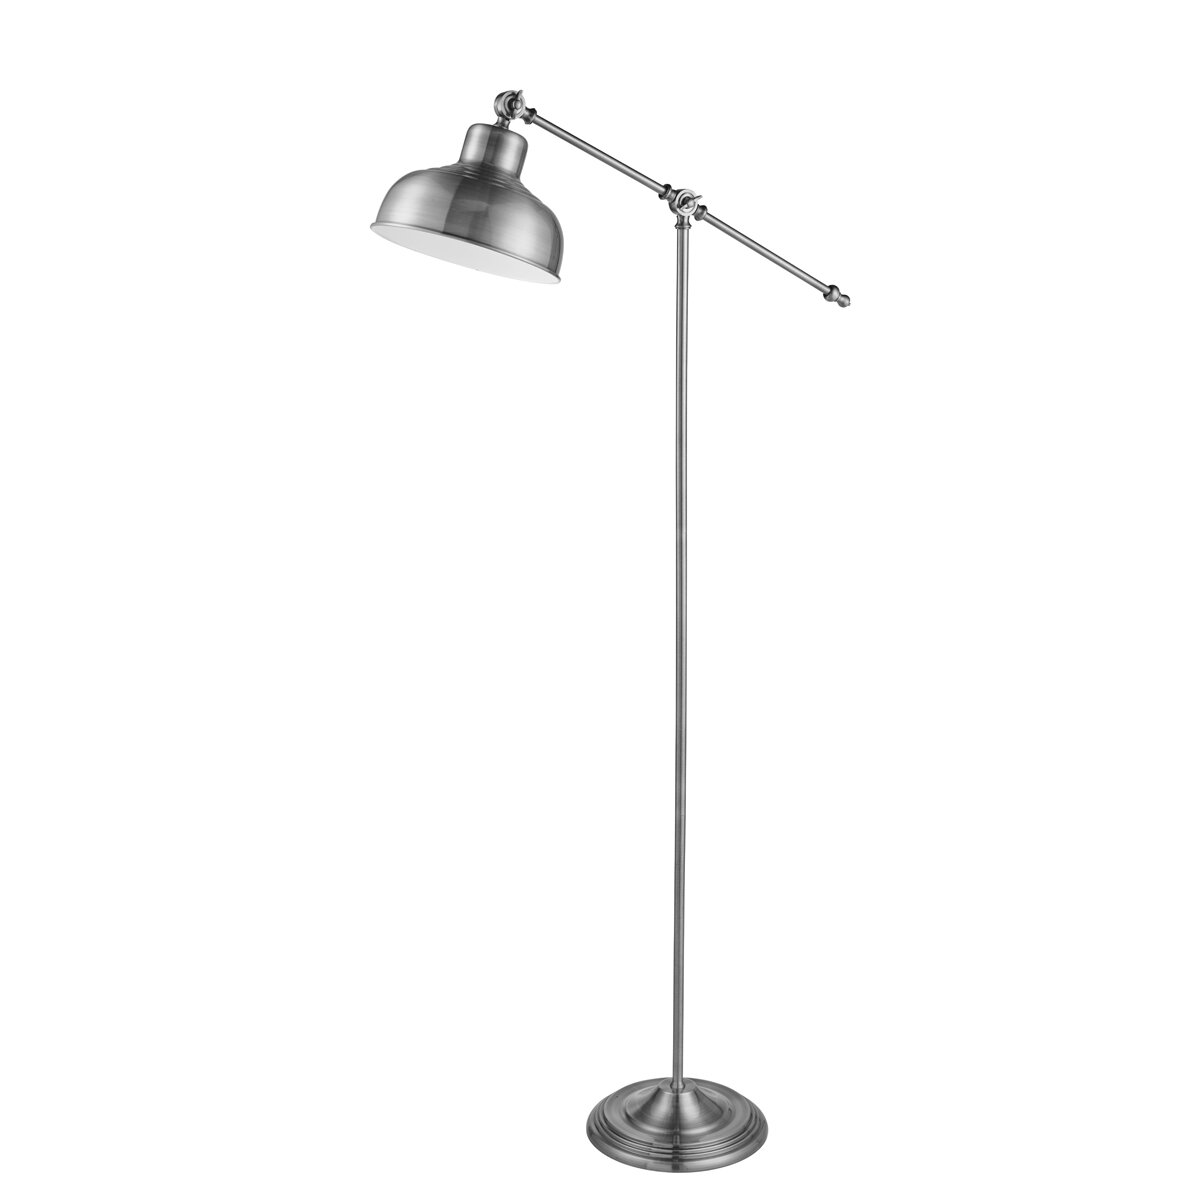 Searchlight macbeth 167cm arched floor lamp reviews for Wayfair industrial lamp